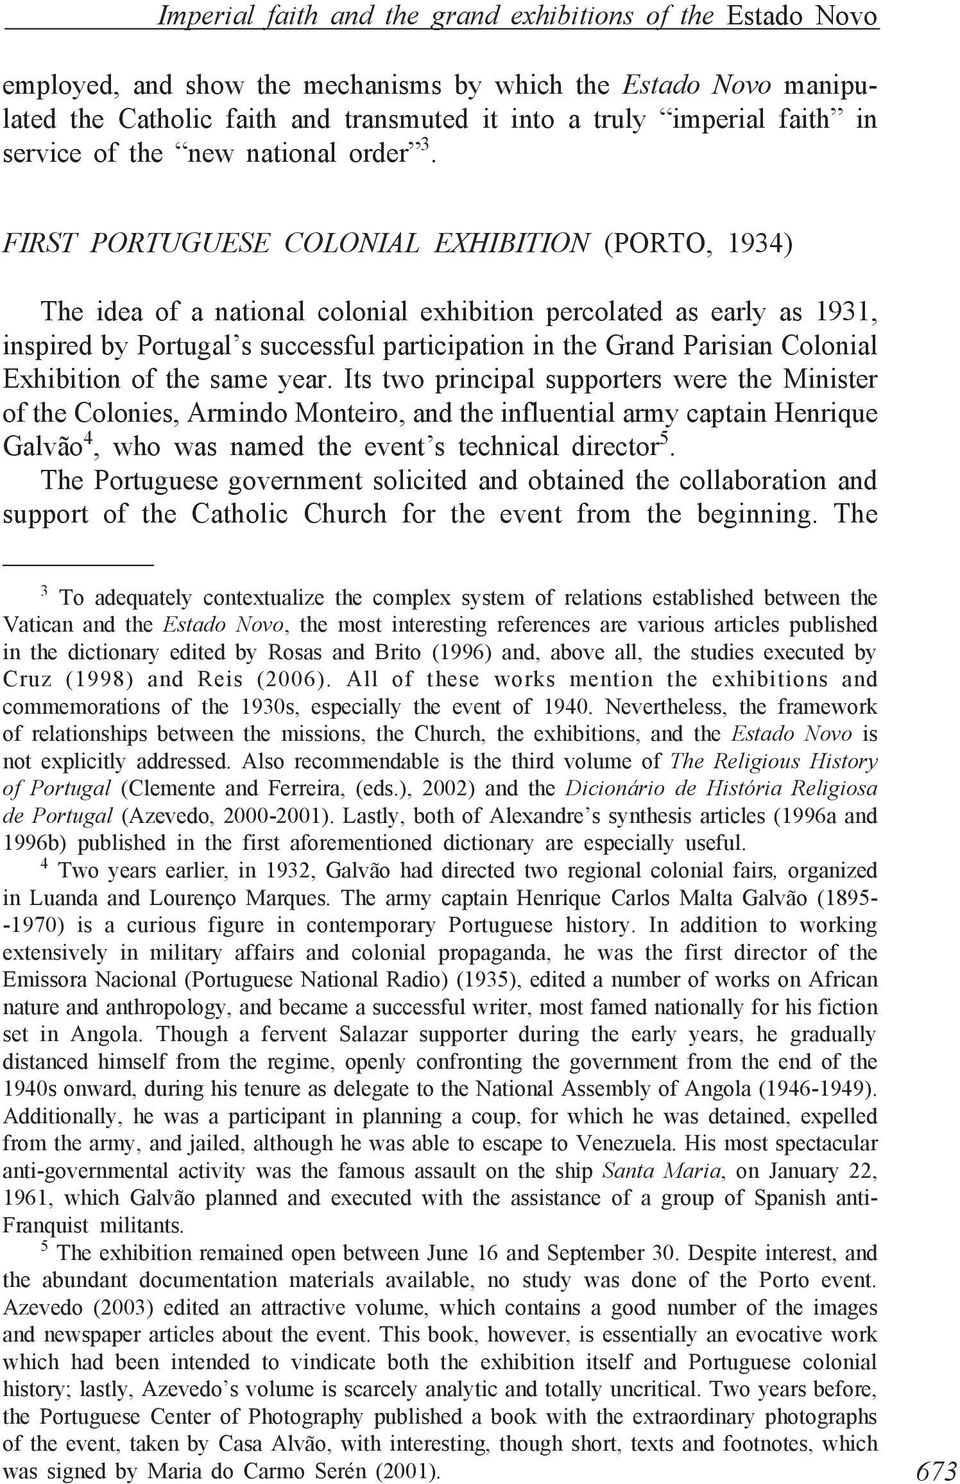 FIRST PORTUGUESE COLONIAL EXHIBITION (PORTO, 1934) The idea of a national colonial exhibition percolated as early as 1931, inspired by Portugal s successful participation in the Grand Parisian